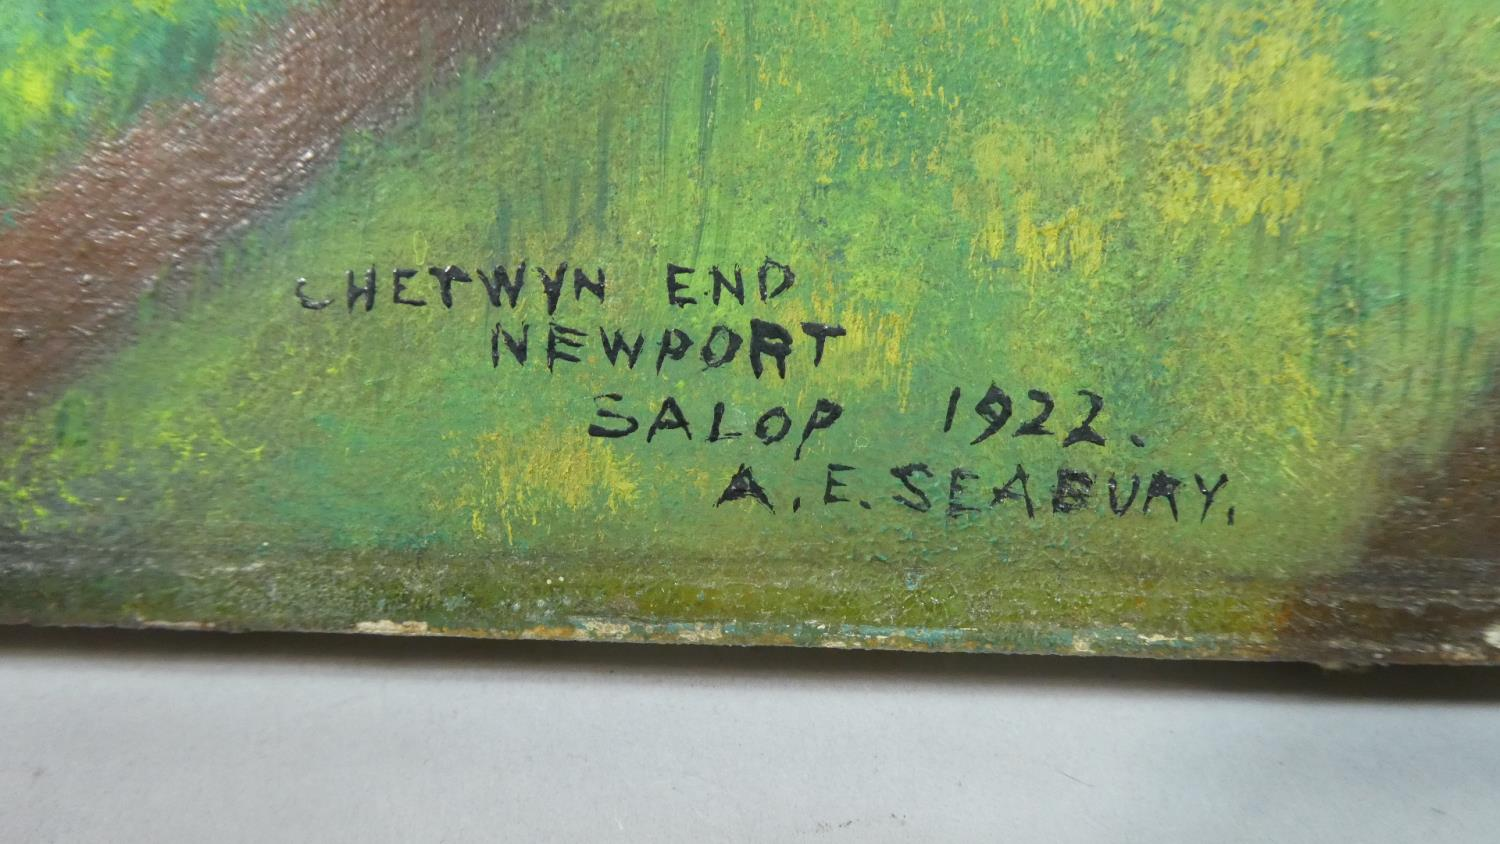 Lot 392 - A Mounted but Unframed Oil on Canvas, Chetwynd End Newport 1922 by Seabury, 61cm Wide